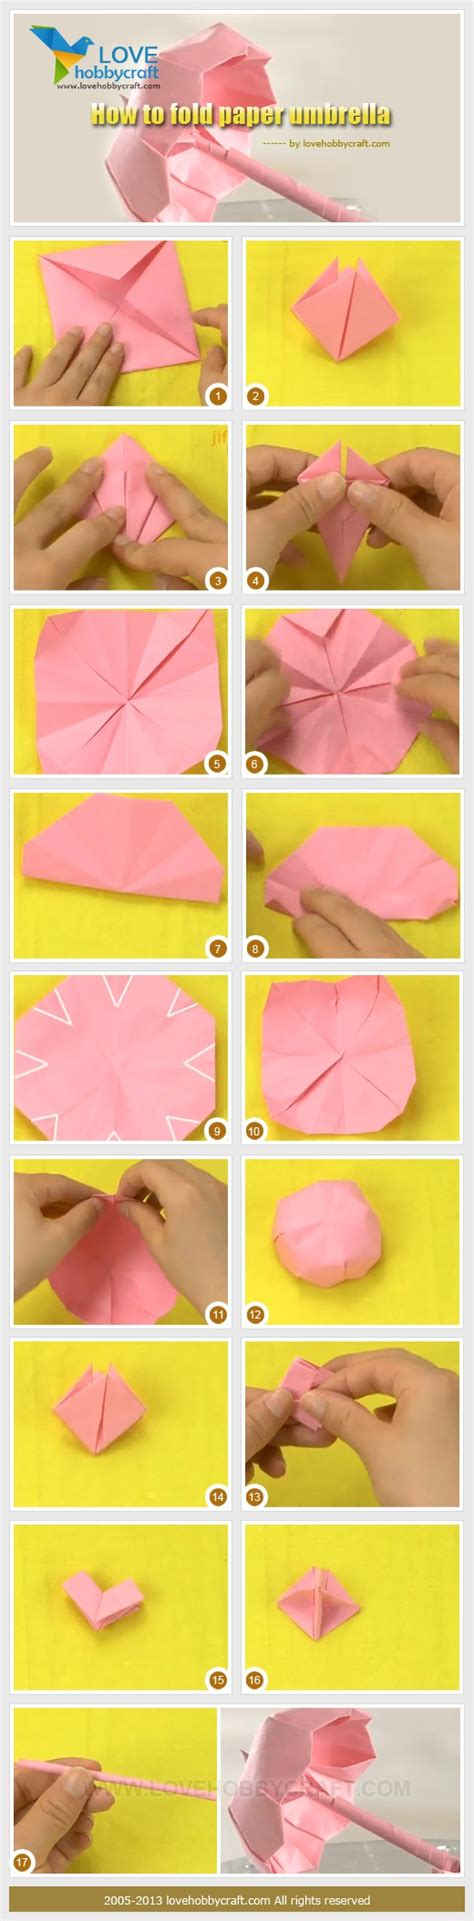 step guide for paper umbrella crafts